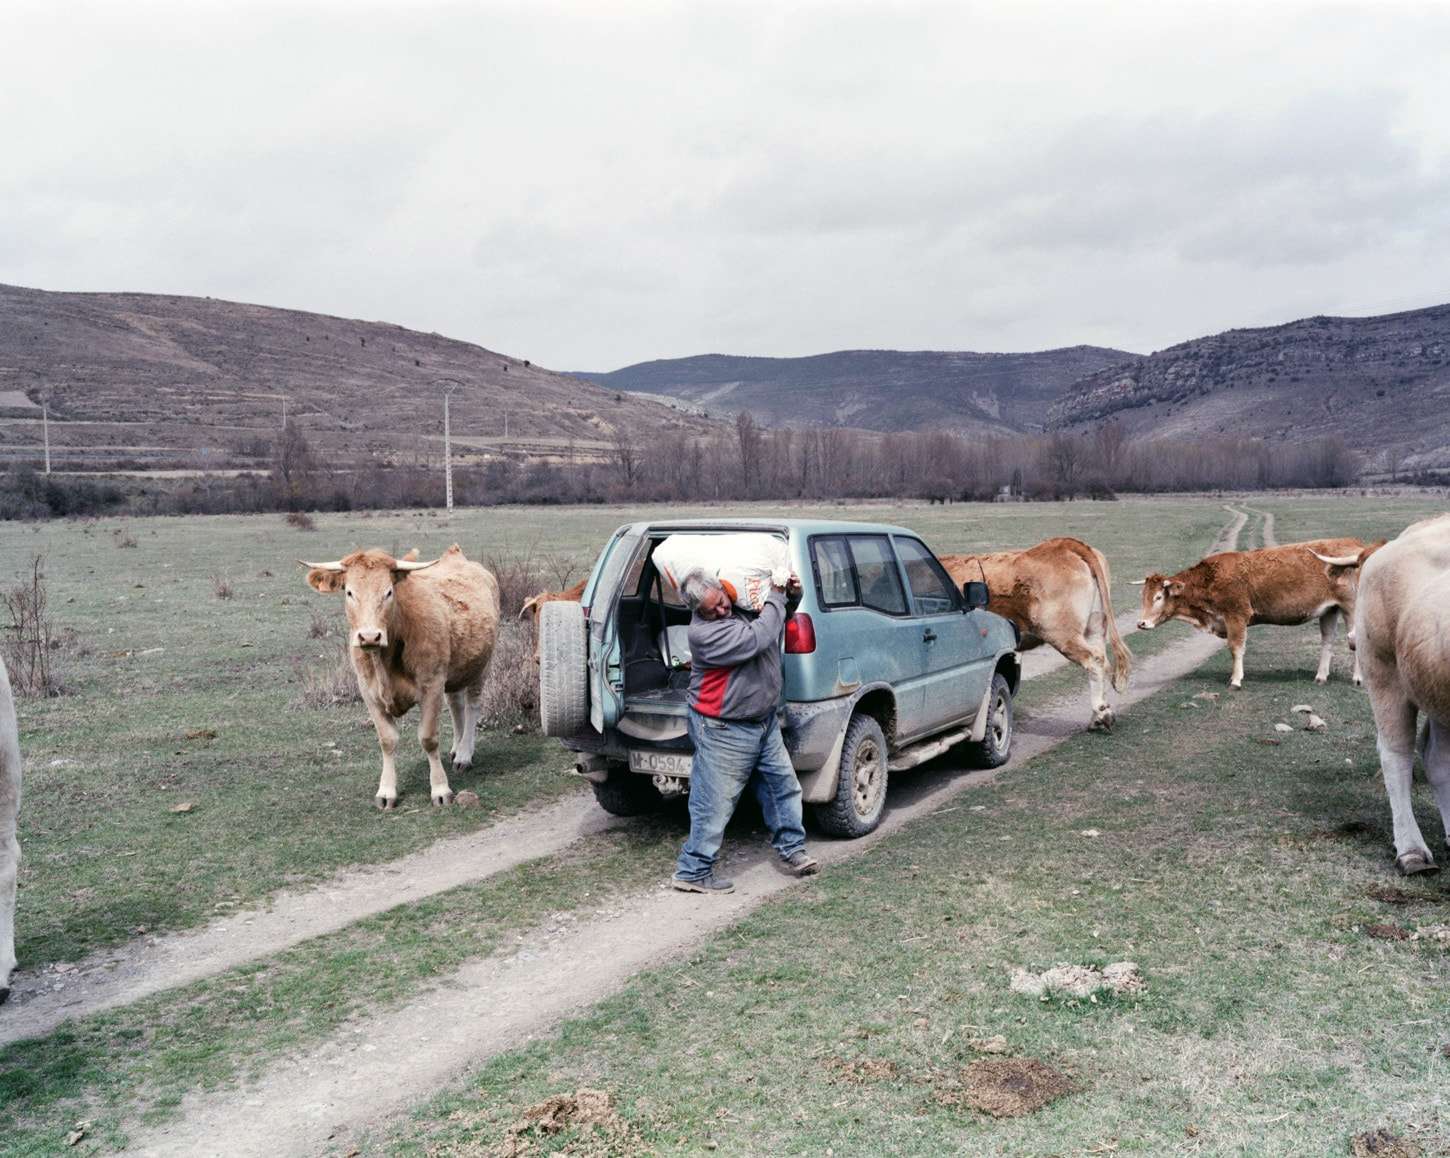 Jose Mari and his cows